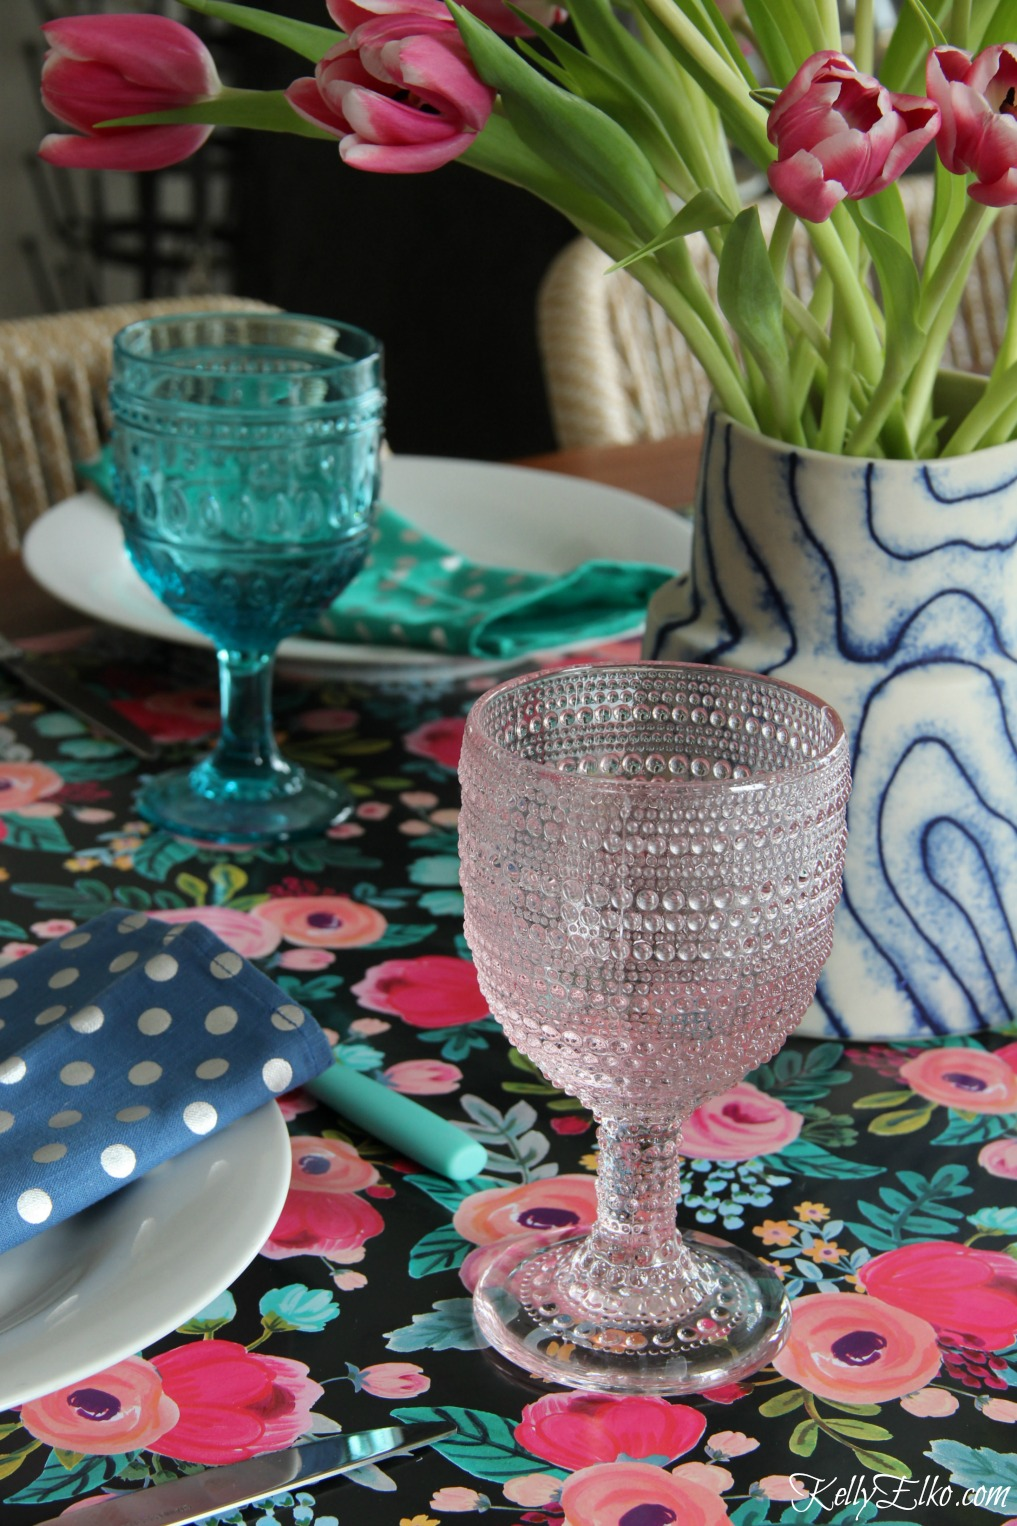 Spring table in blues and pinks - love the floral table runner kellyelko.com